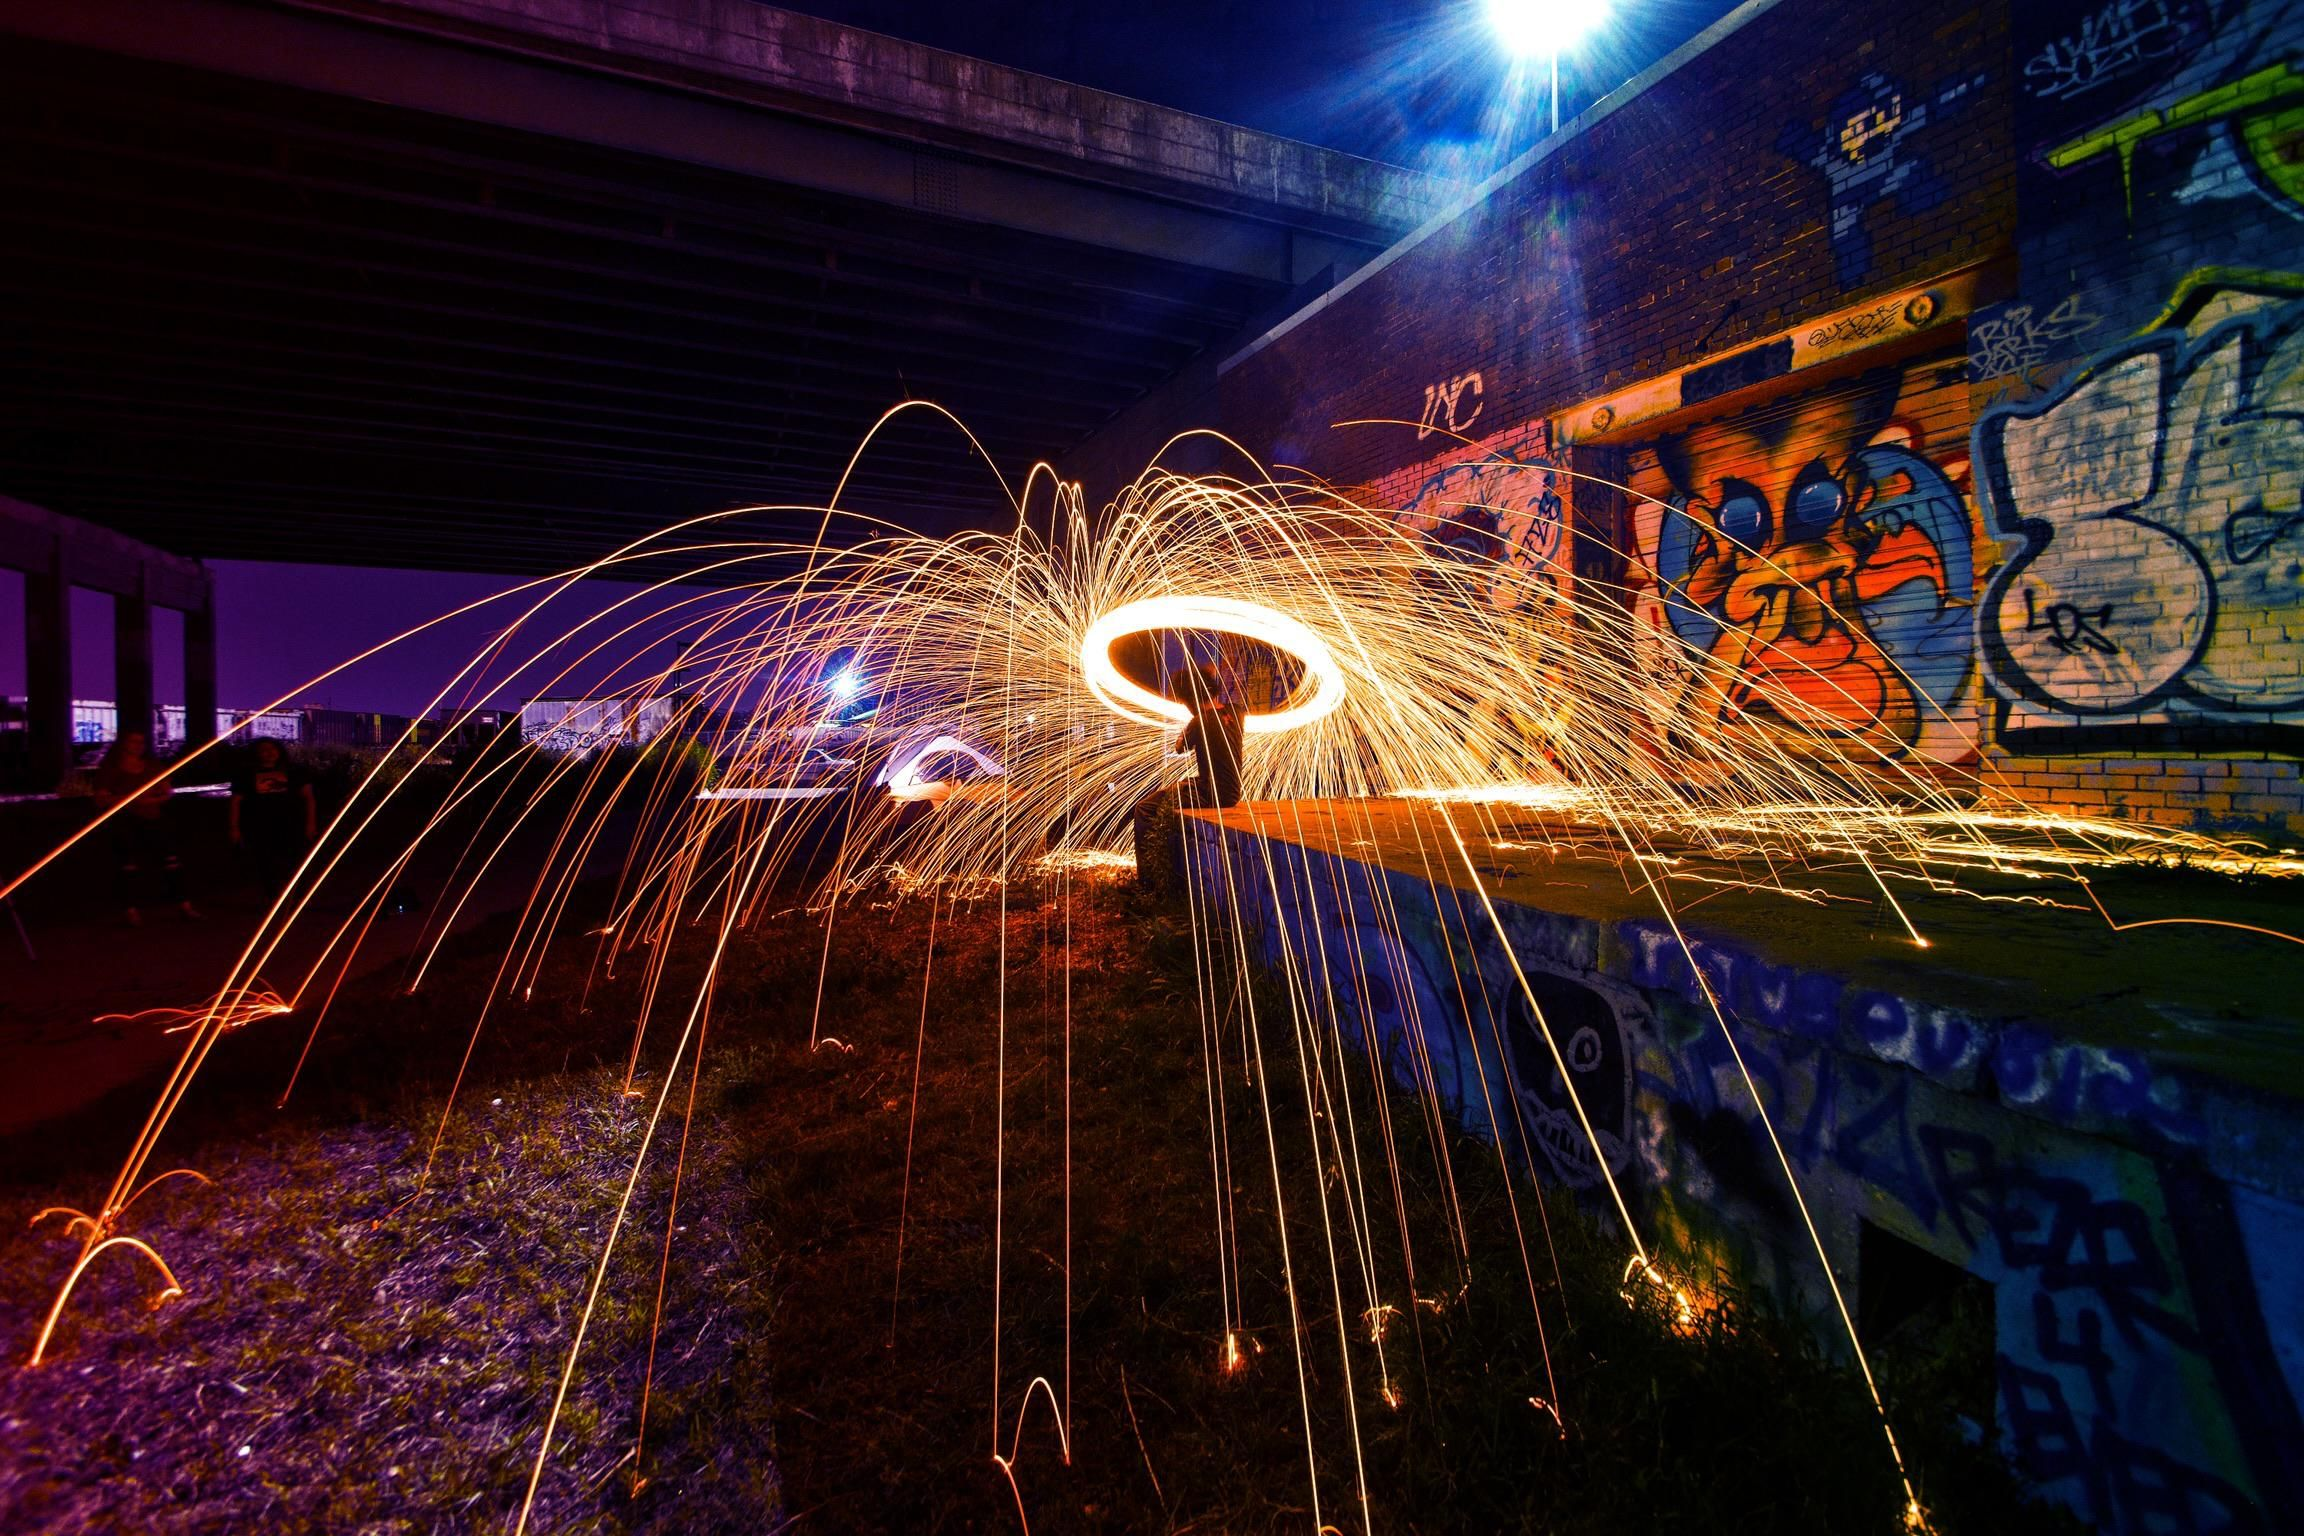 Pin by LovePeaceHarmony🌸 on Steel Wool Photography | Steel